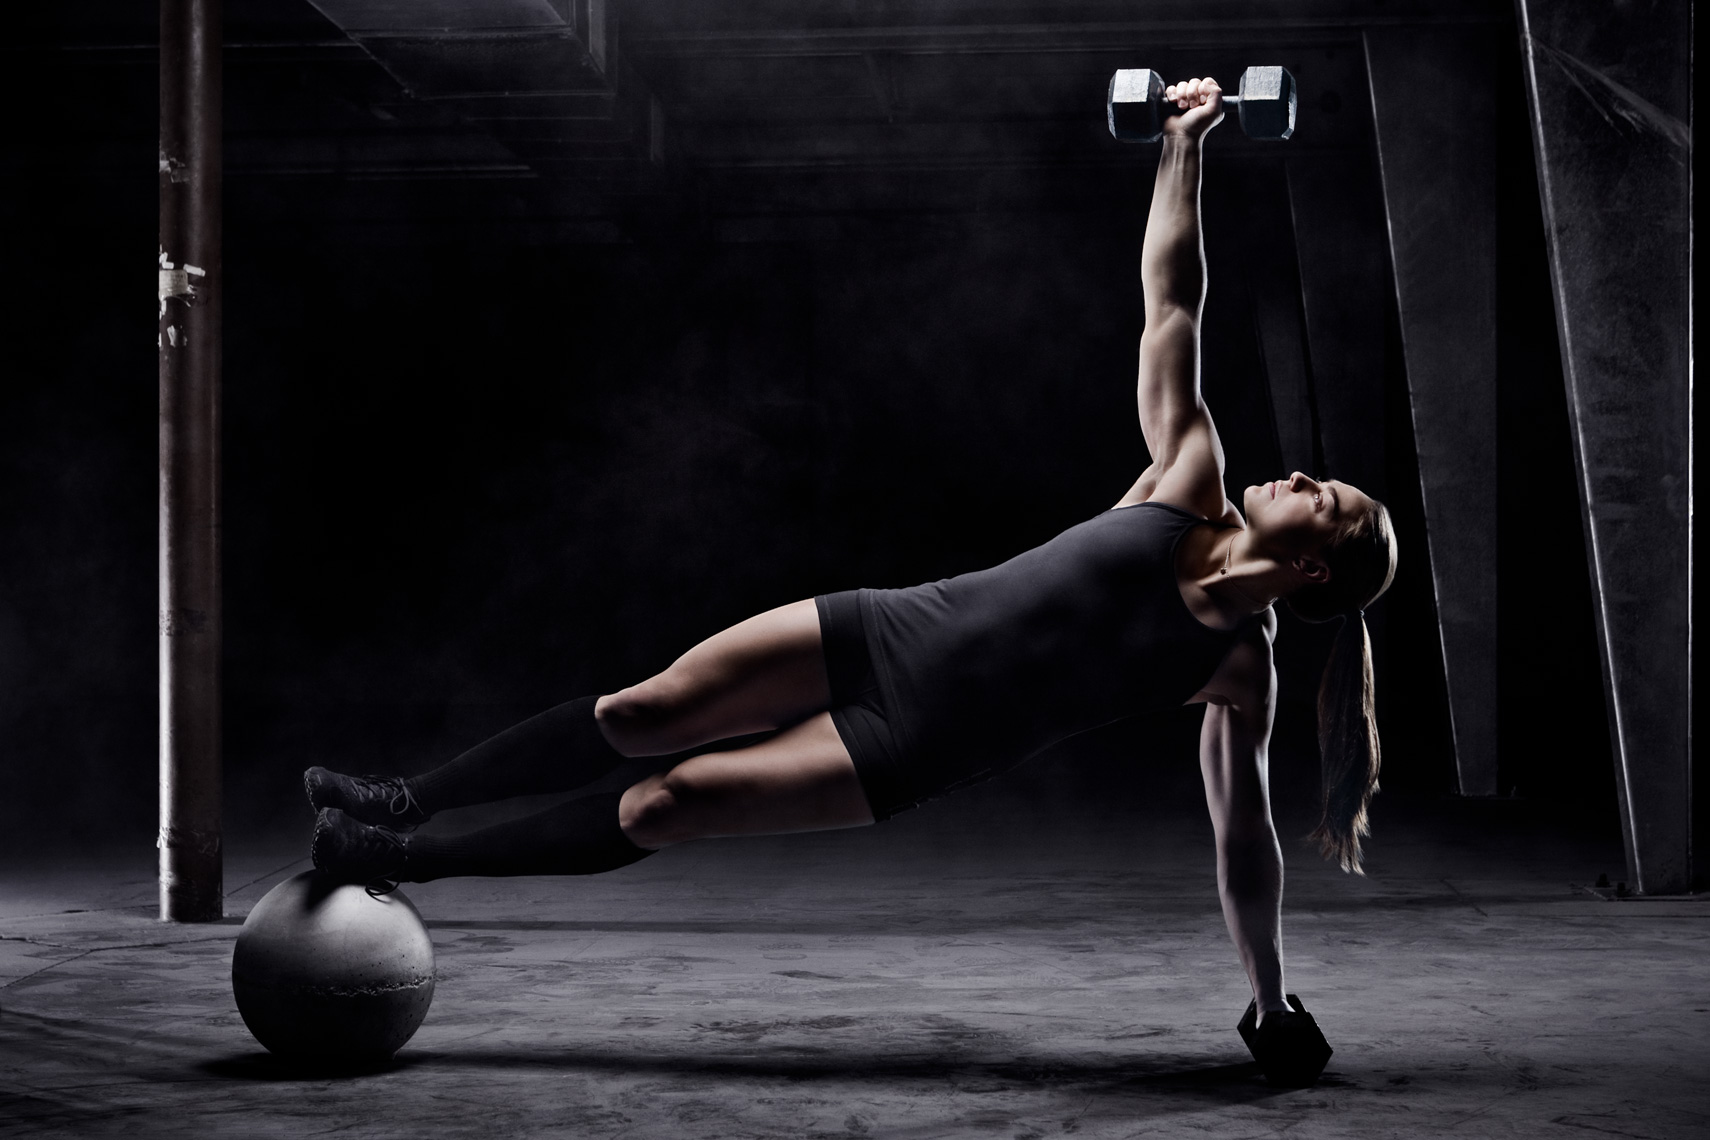 Los Angeles Sports Photography, Michael Brian, female, Katie Hogan, Reebok Crossfit Games athlete, studio portrait, side plank on ball